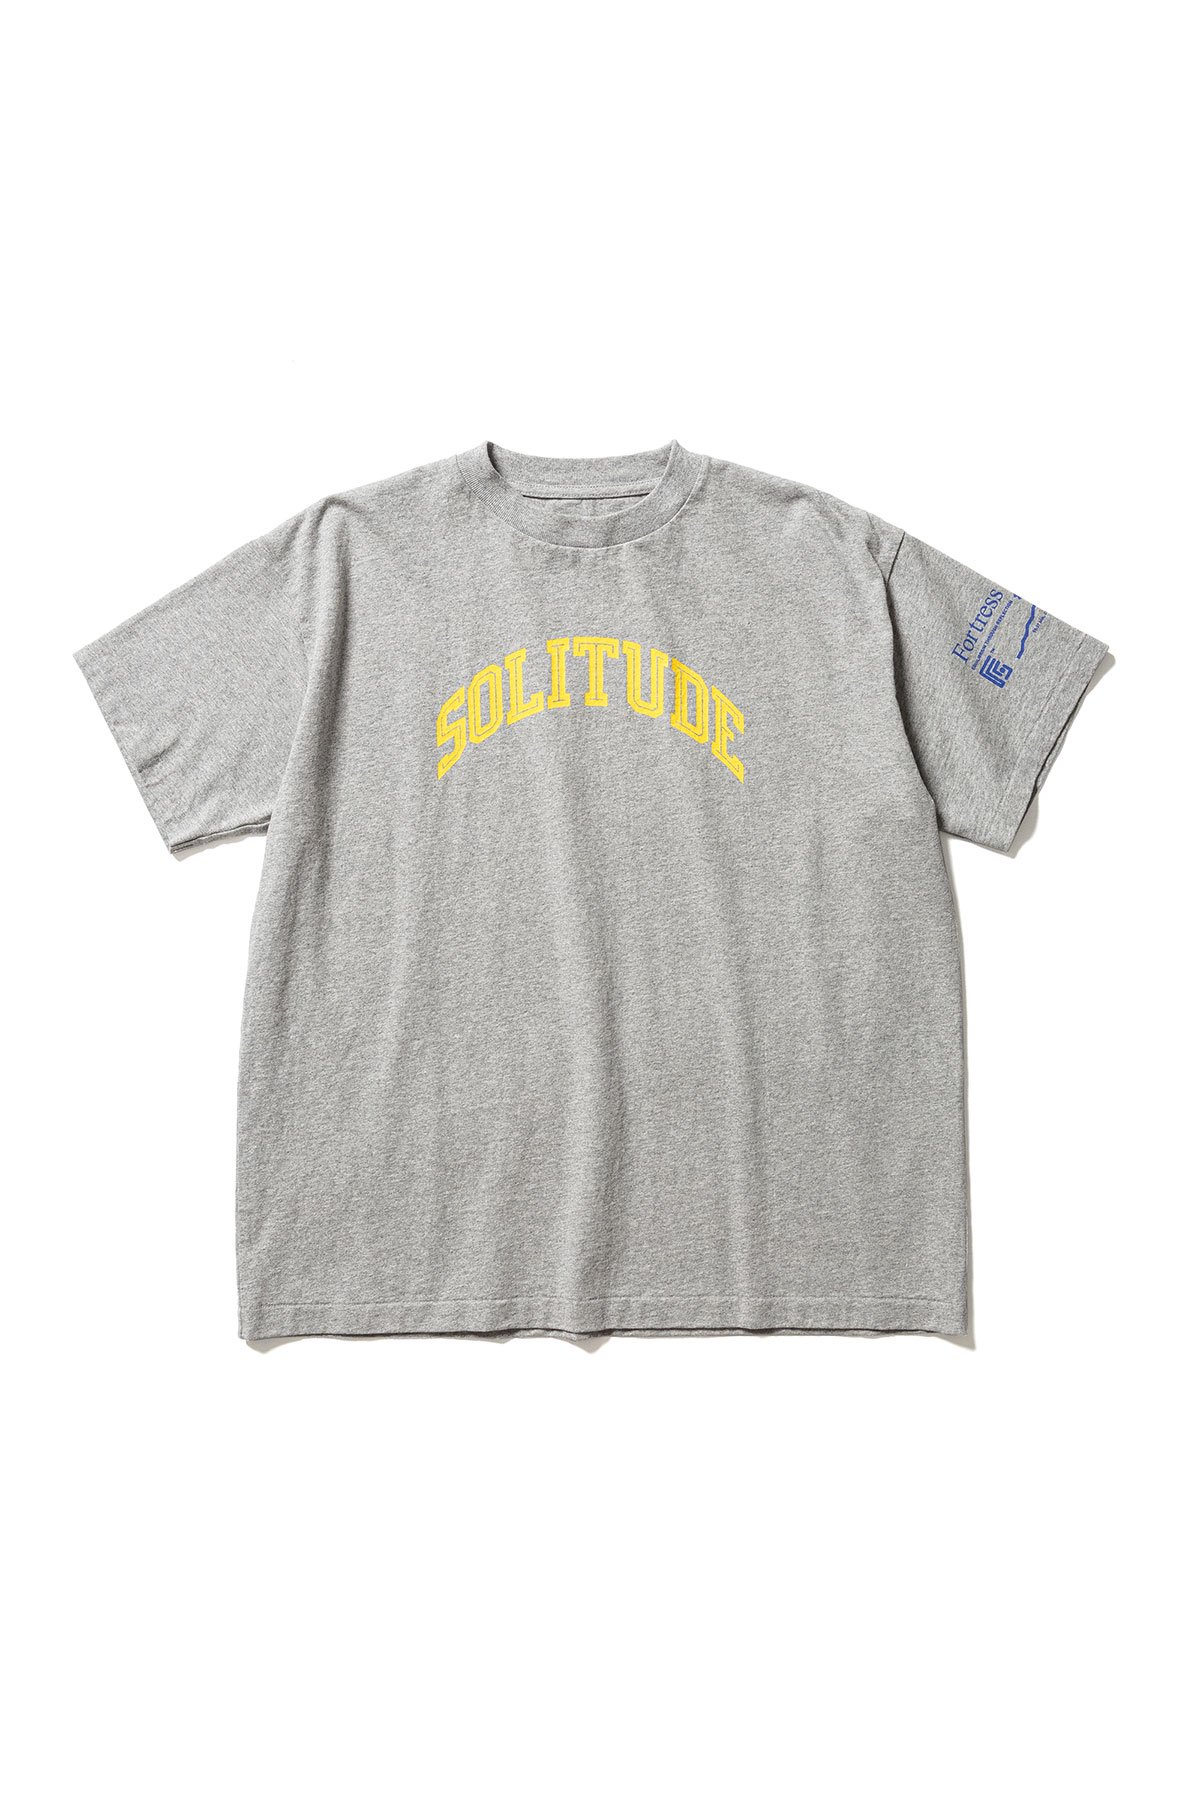 FORTLESS SOLITUDE / TEE STYLE 2